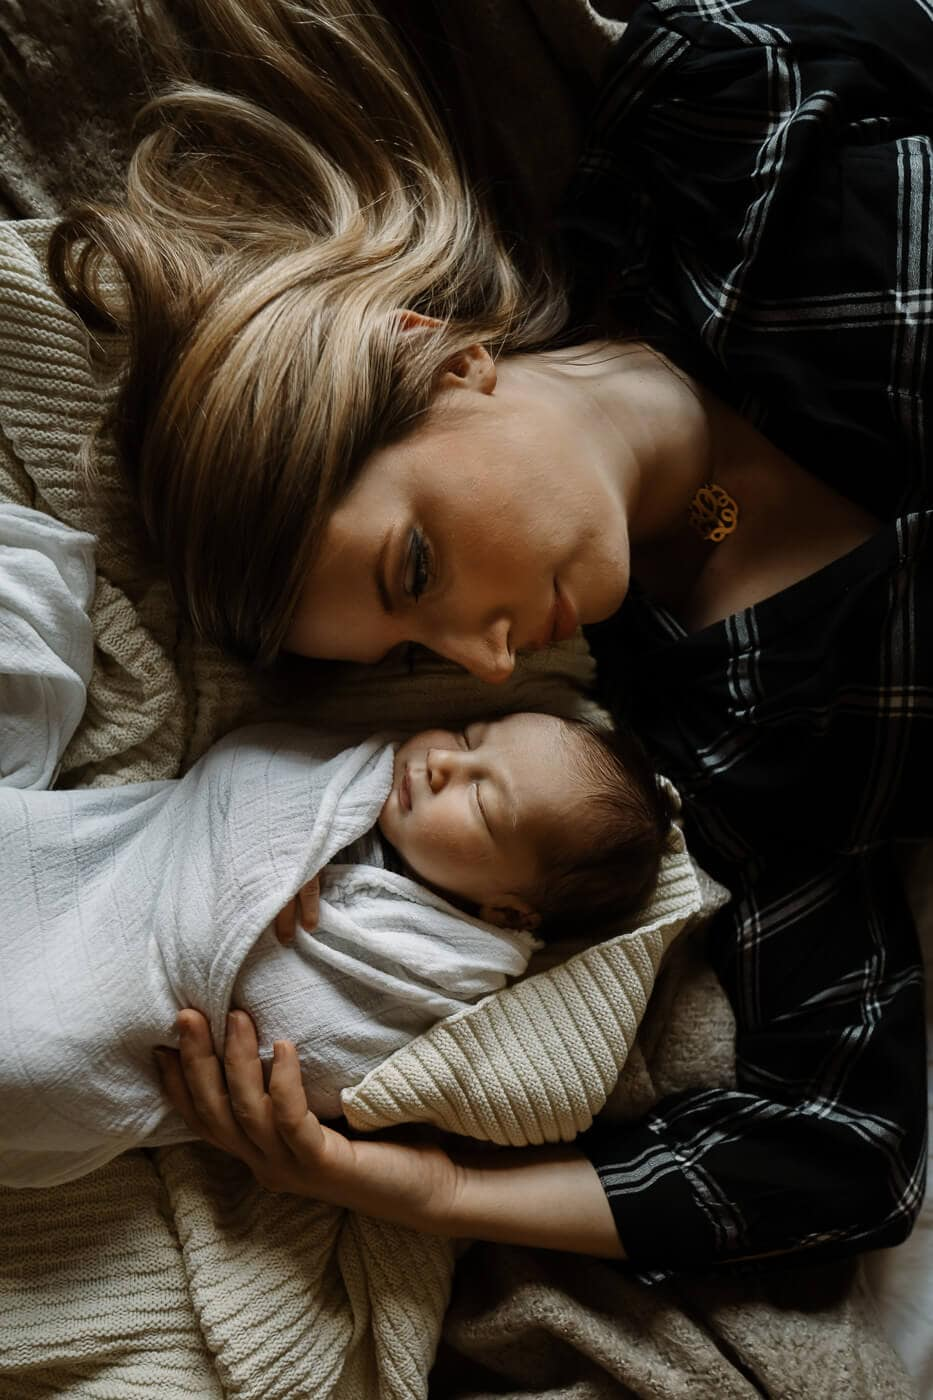 blond woman lying on bed with newborn baby boy in hampstead montreal